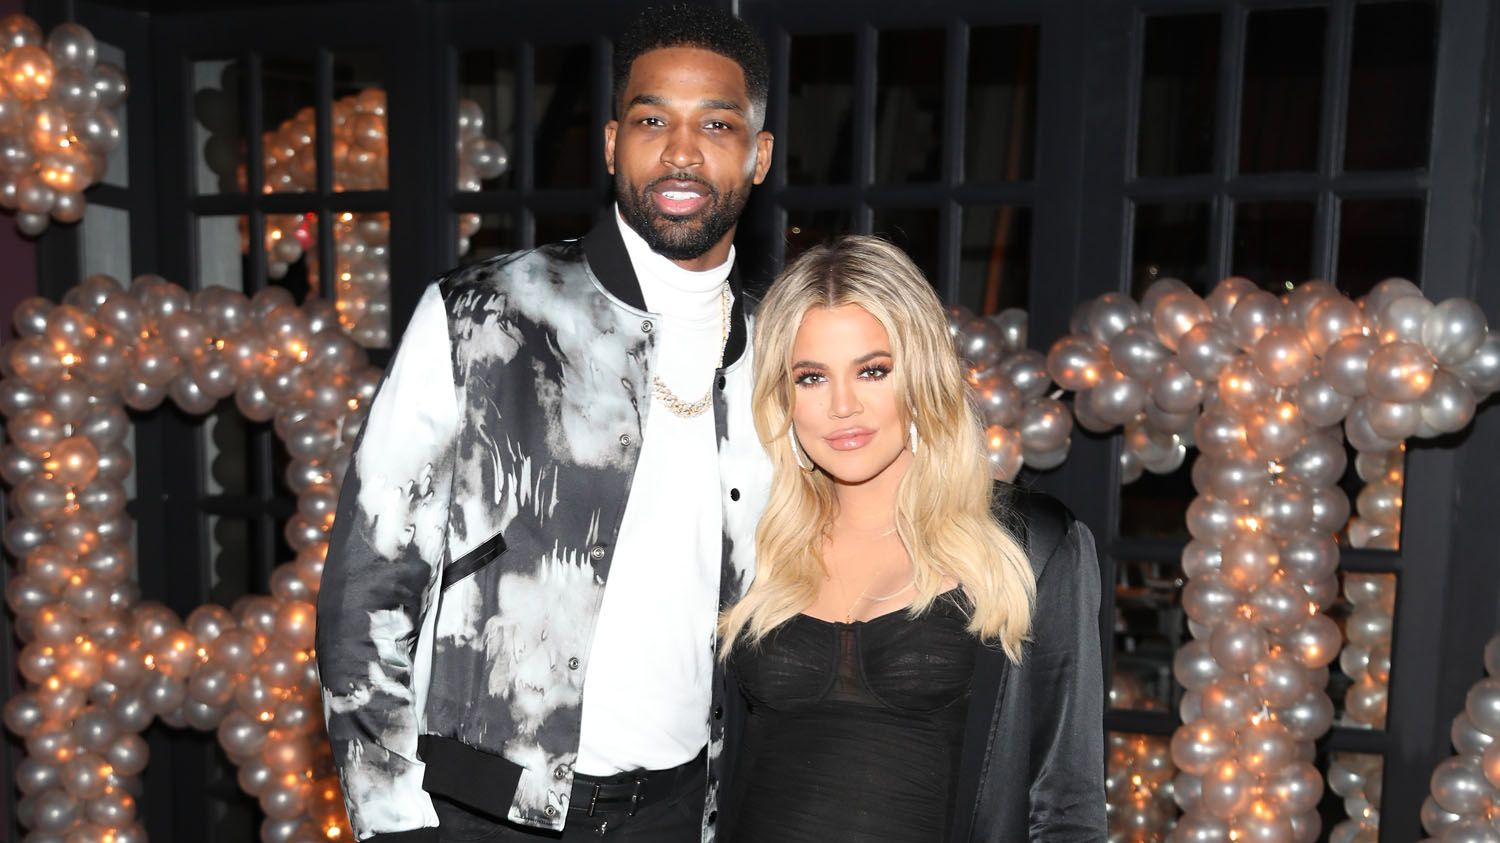 Fans think Khloe Kardashian is ENGAGED to Tristan Thompson after latest snap 💍